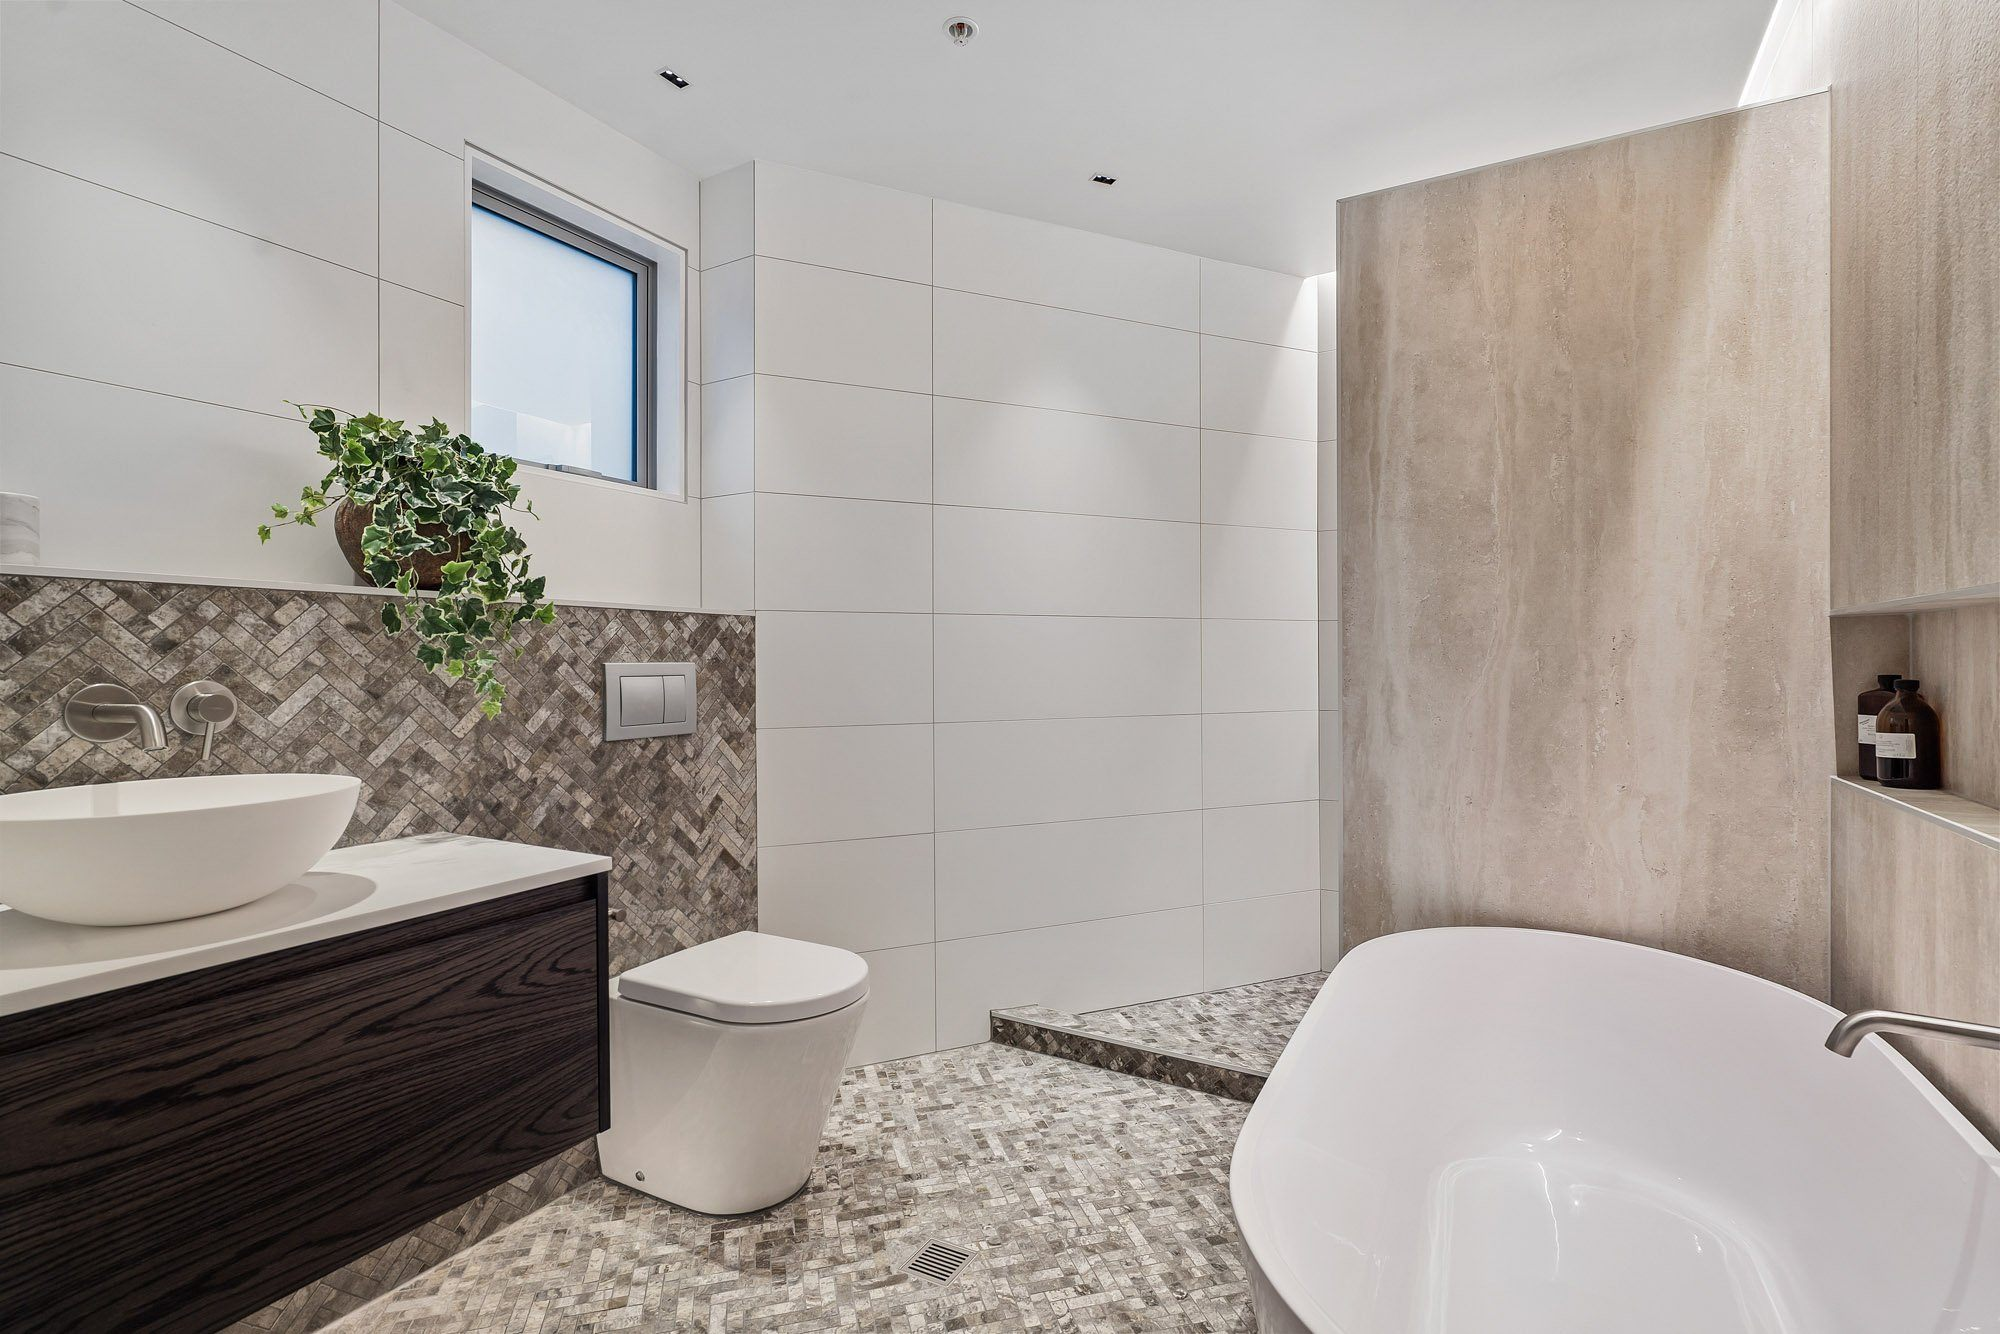 Bathroom with tiles floor and bathtub